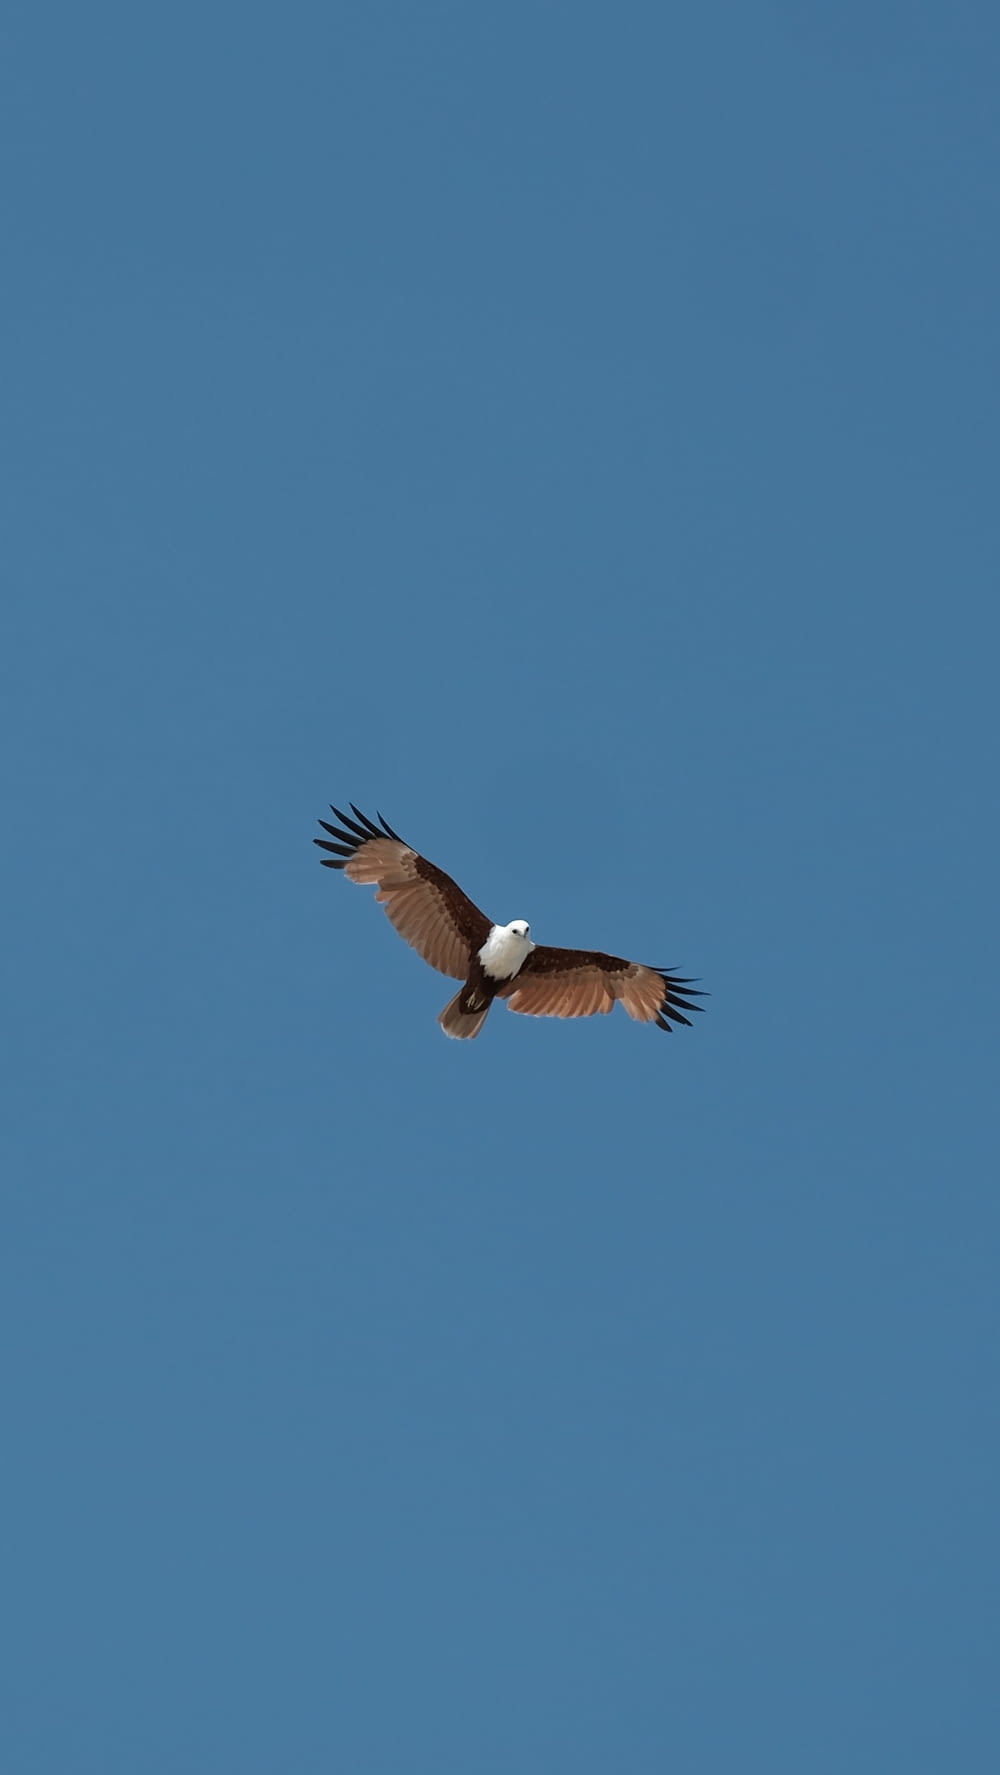 brown eagle on mid air